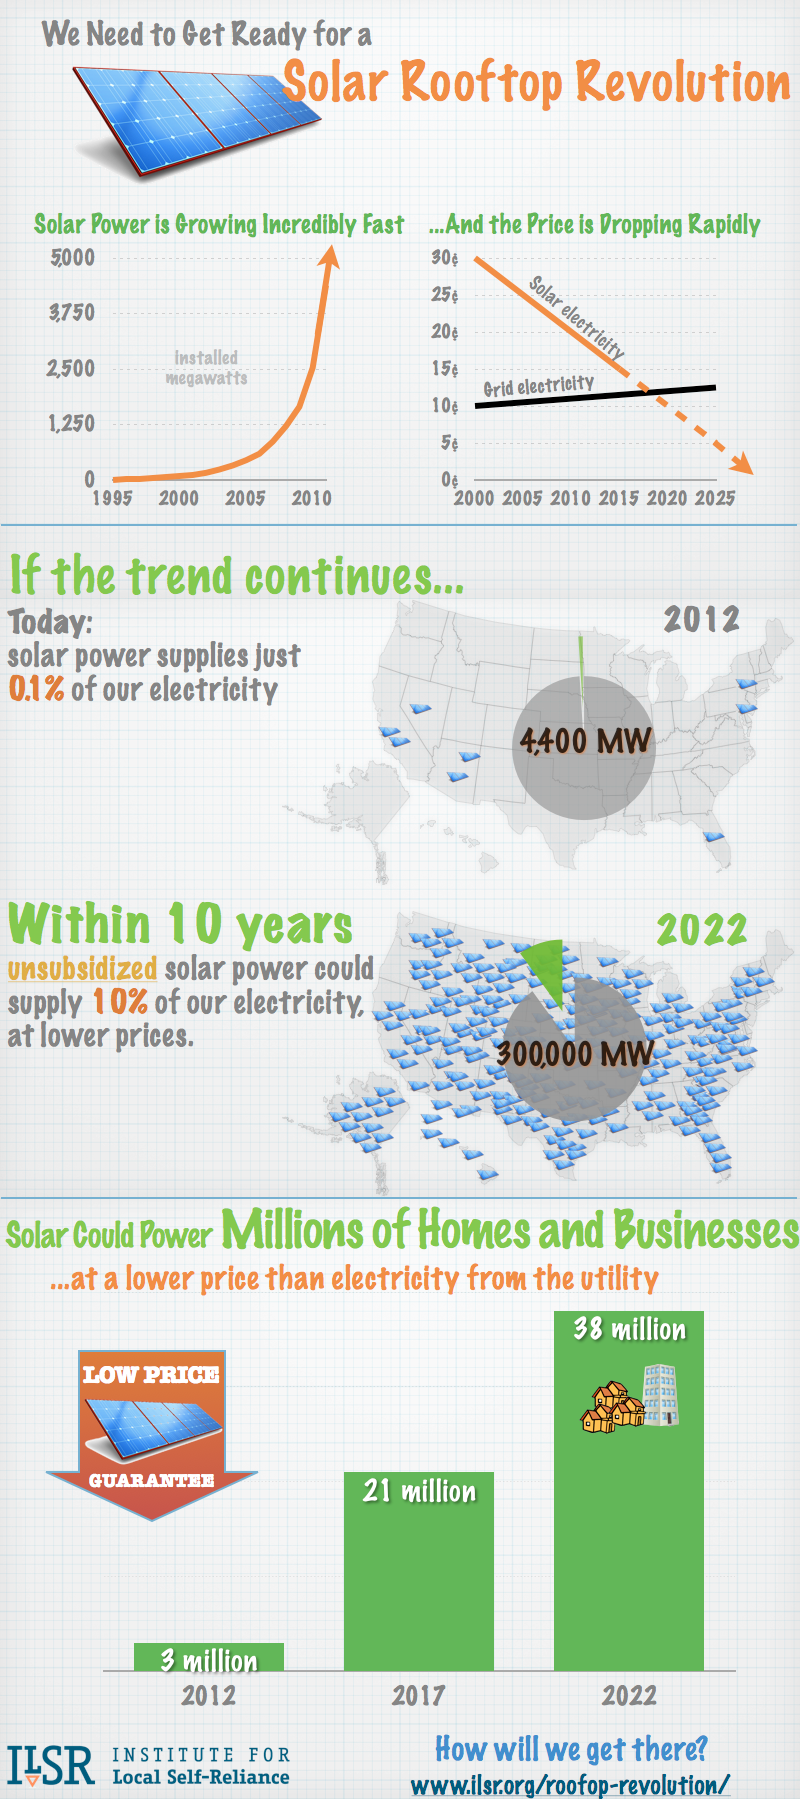 We Need to Get Ready for a Solar Rooftop Revolution [Infographic]